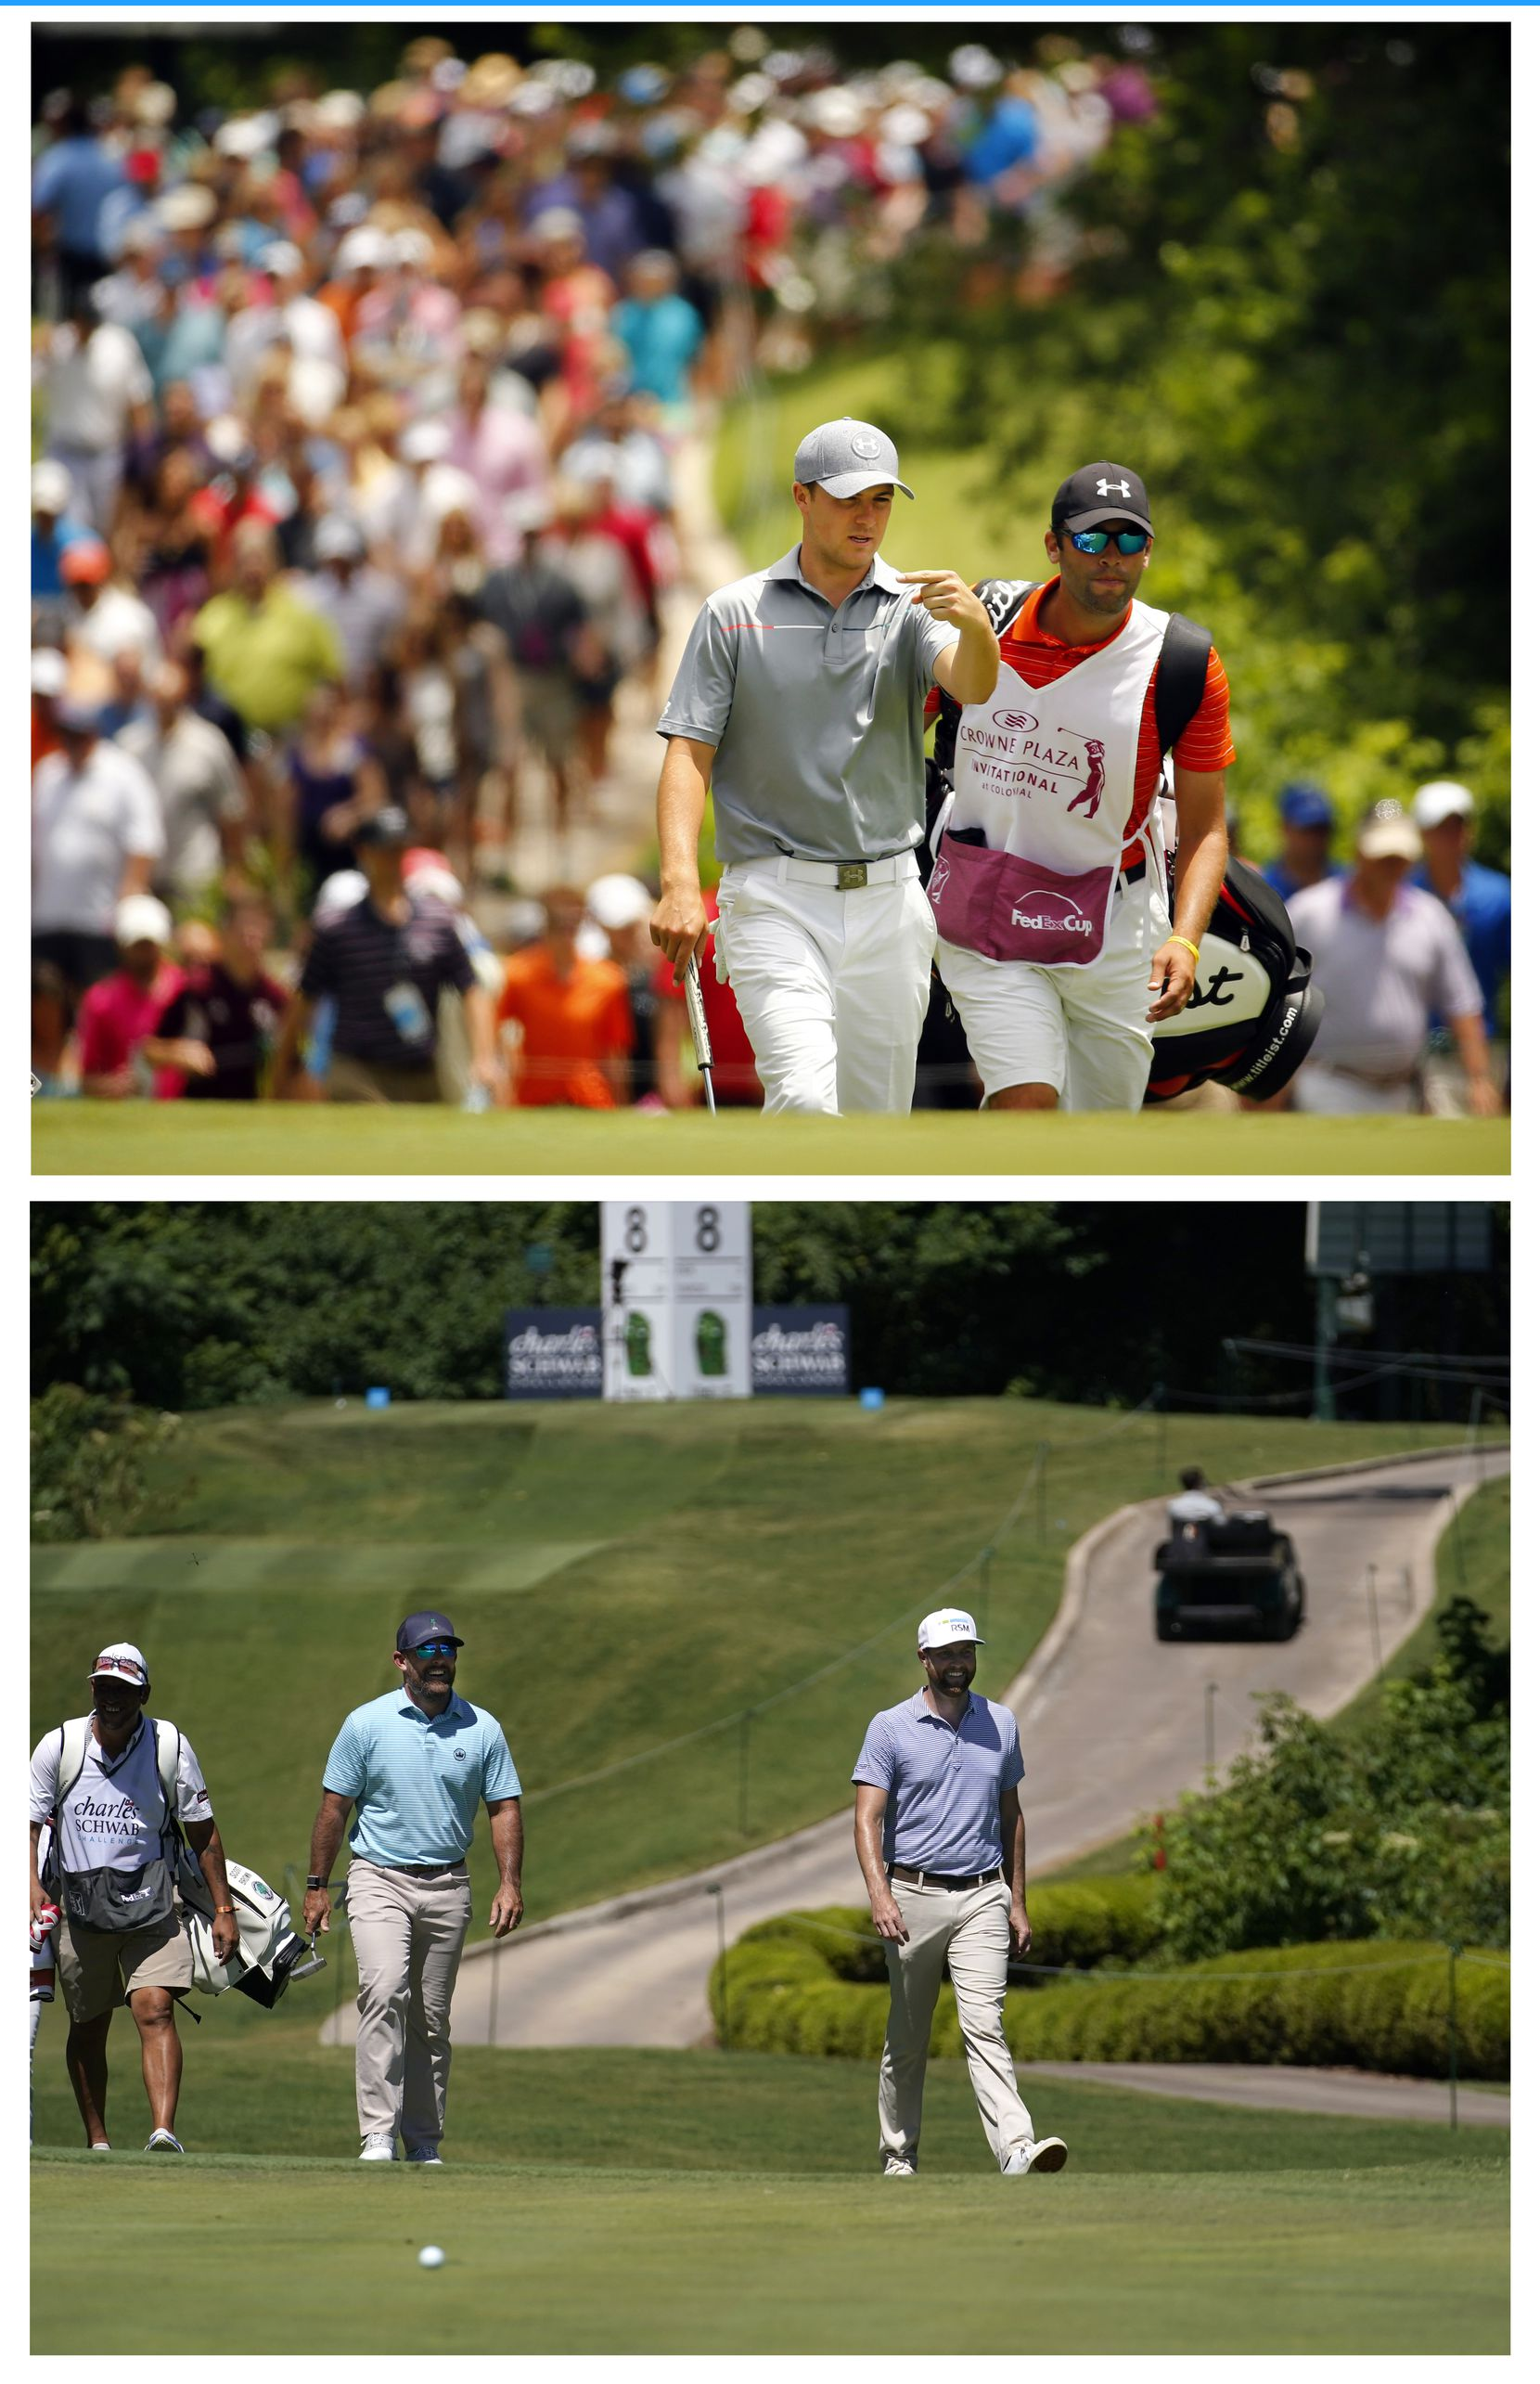 THEN - With a huge gallery in tow, golfer Jordan Spieth of Dallas, walks up the par-3, 8th with his caddie during the final round of the PGA Crowne Plaza Invitational at Colonial Country Club in Fort Worth, Sunday, May 25, 2014.  NOW - Without any fans in attendance, PGA Tour golfers Scott Brown (left) and Chris Kirk walk up to the No. 8 green during the second round of the Charles Schwab Challenge at the Colonial Country Club in Fort Worth, Friday, June 12, 2020.